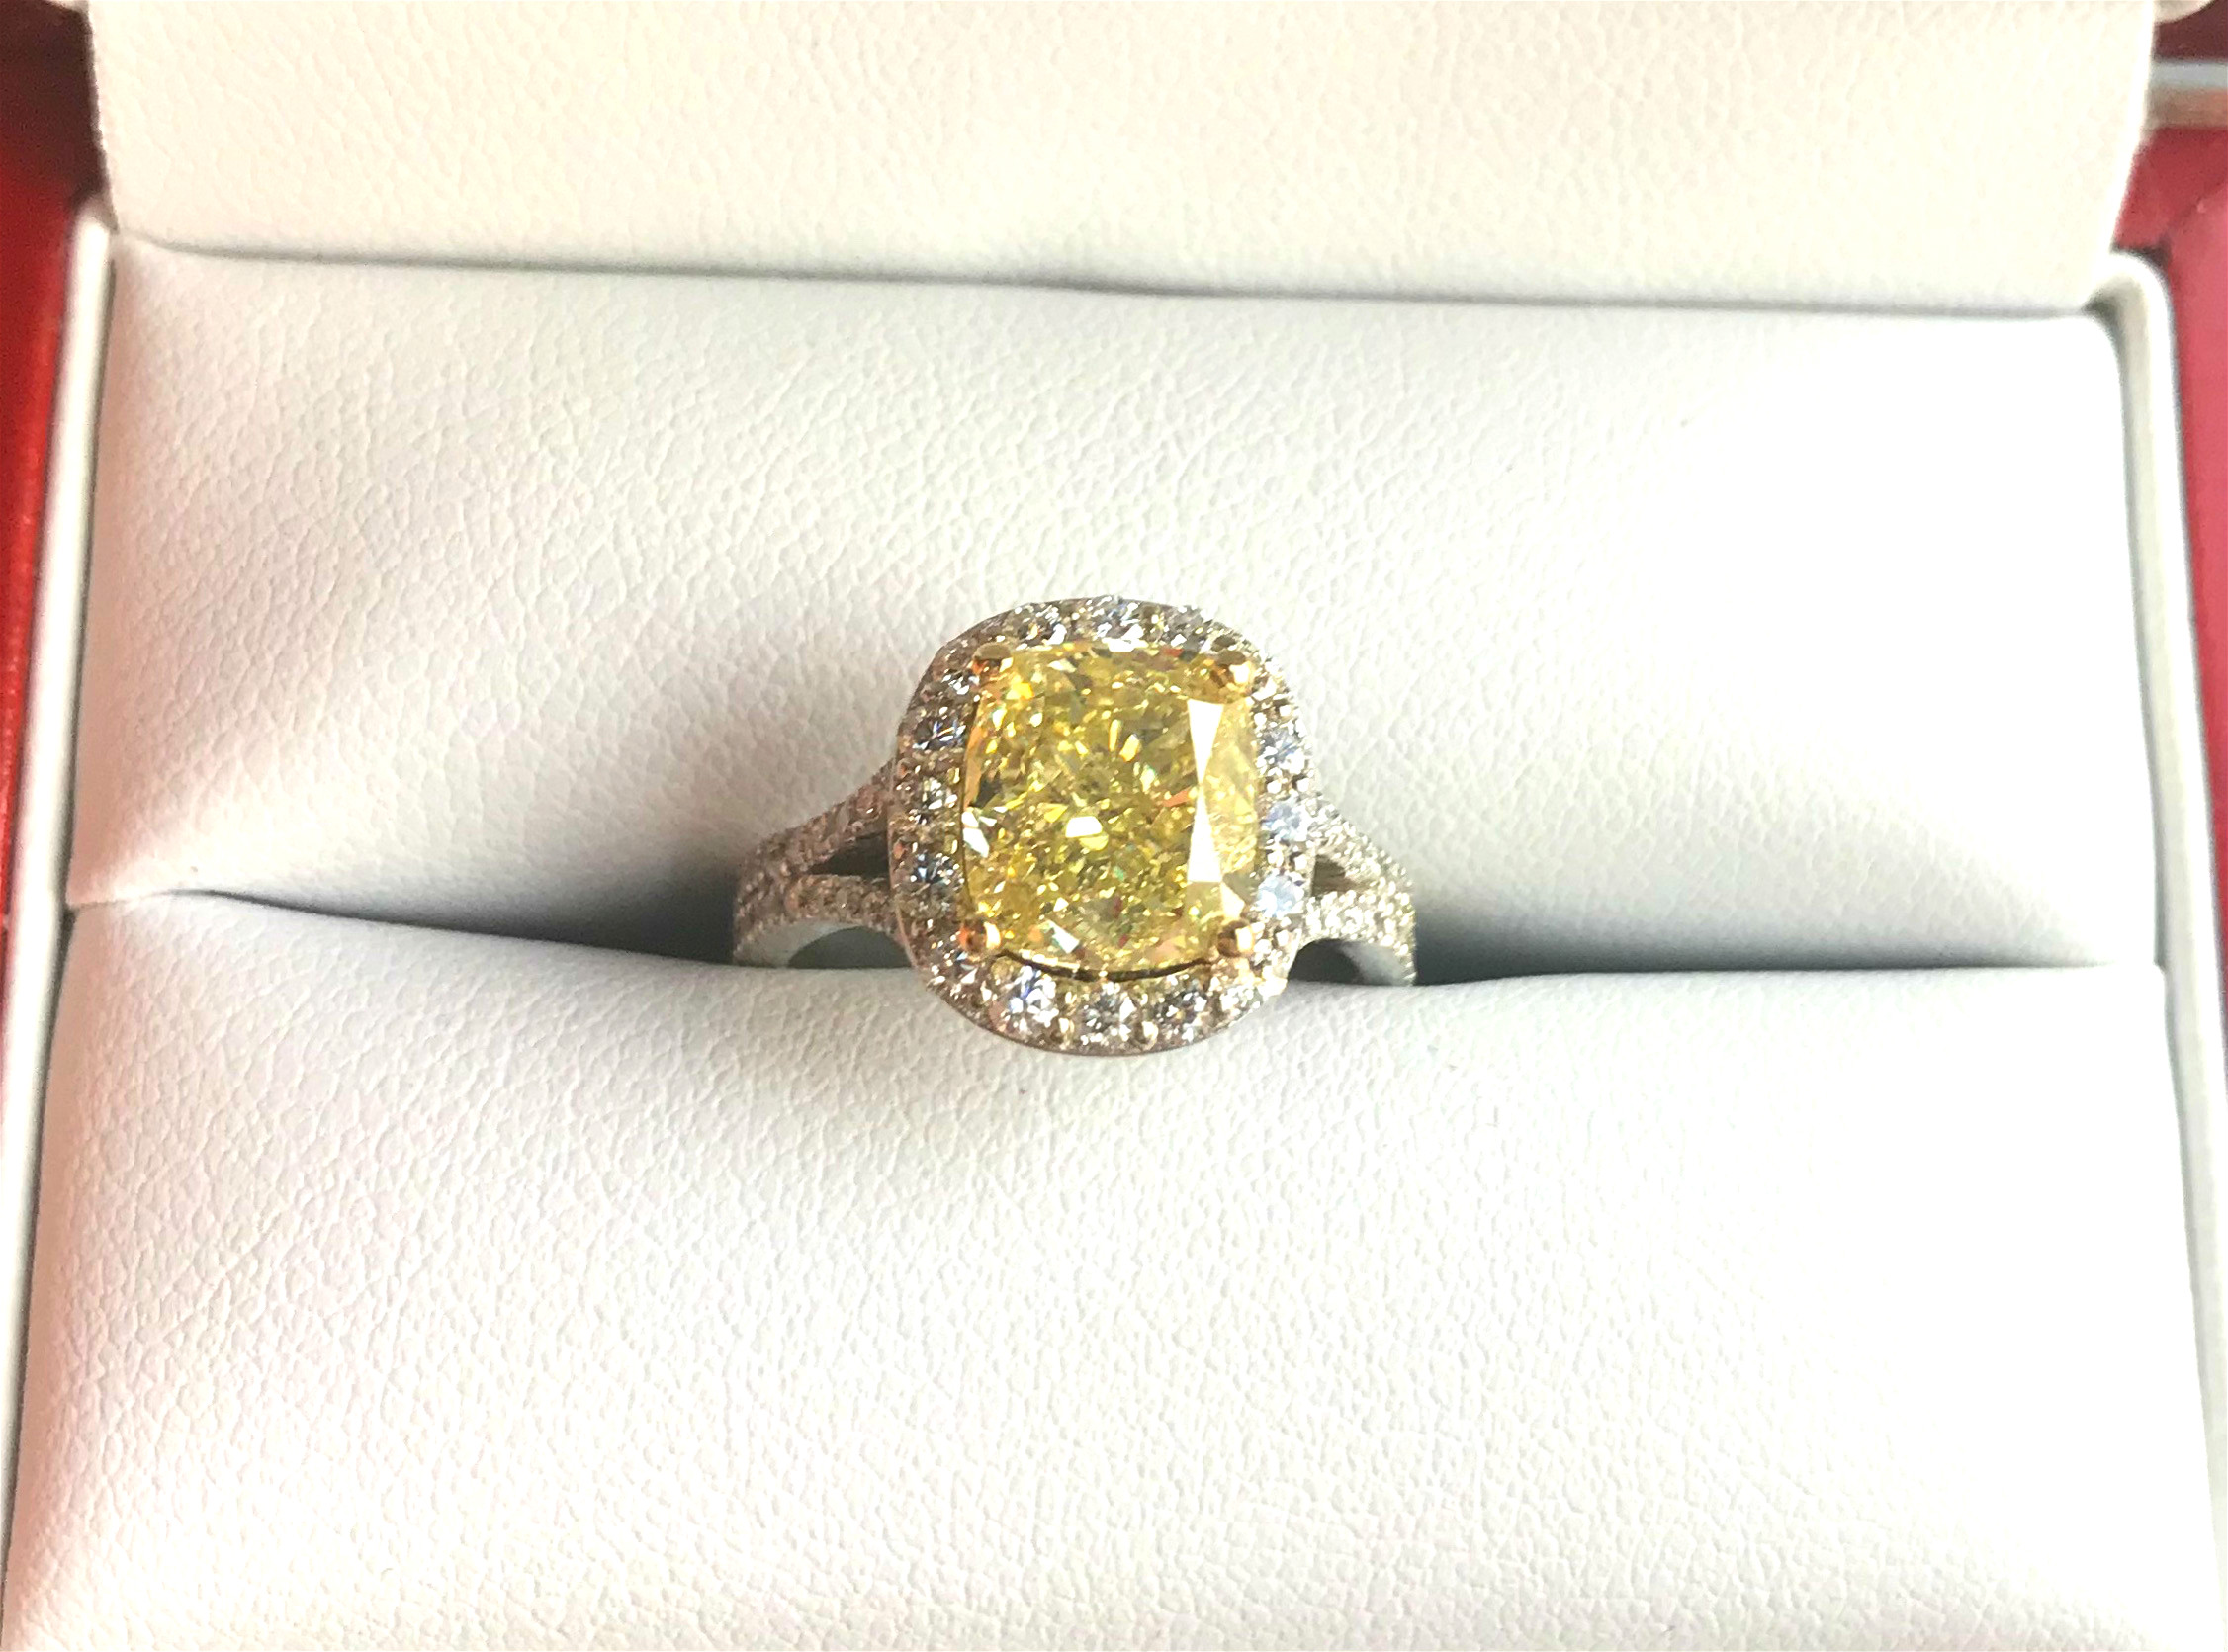 white featuring with internally collections graff yellow carat high a ct fancy and cut flawless intense diamond trilliant ring emerald jewellery